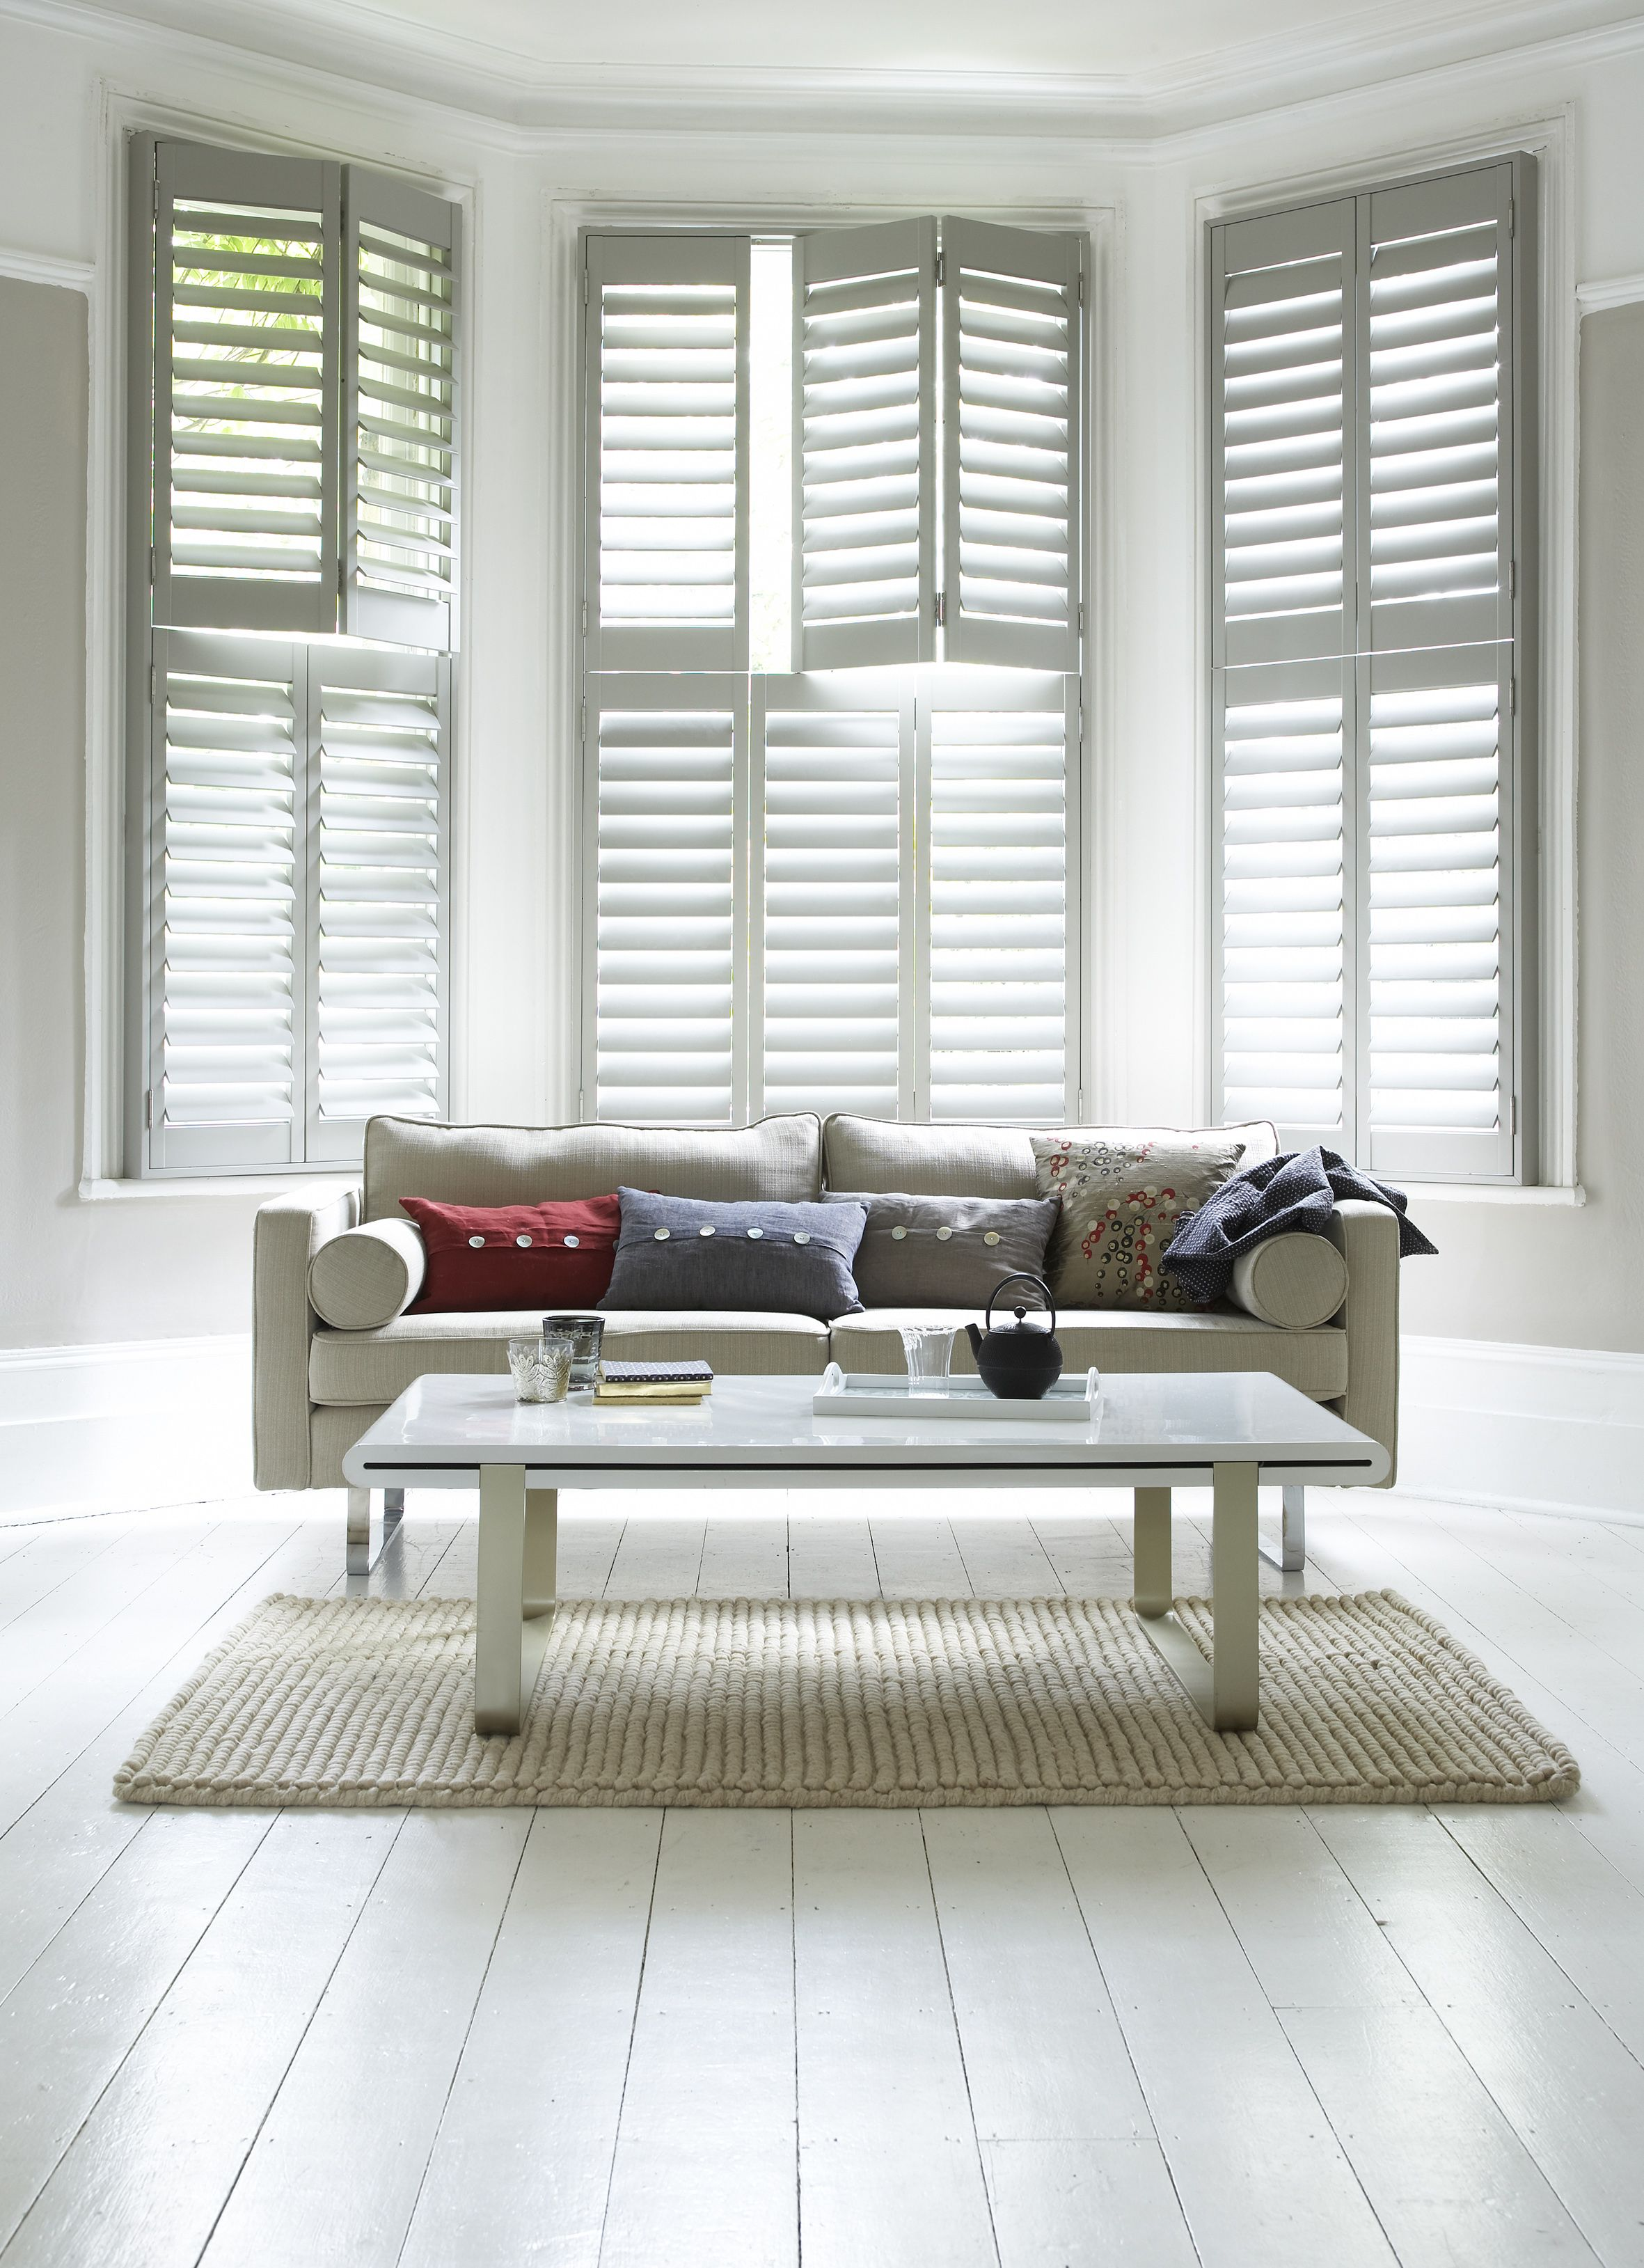 Highprofile Shutters Combine Strength And Durability With Elegant Design And Help You Provide The Right Mix Of Light Airflow And Temperatu Wooden Window Shutters Interior Shutters Interior Windows